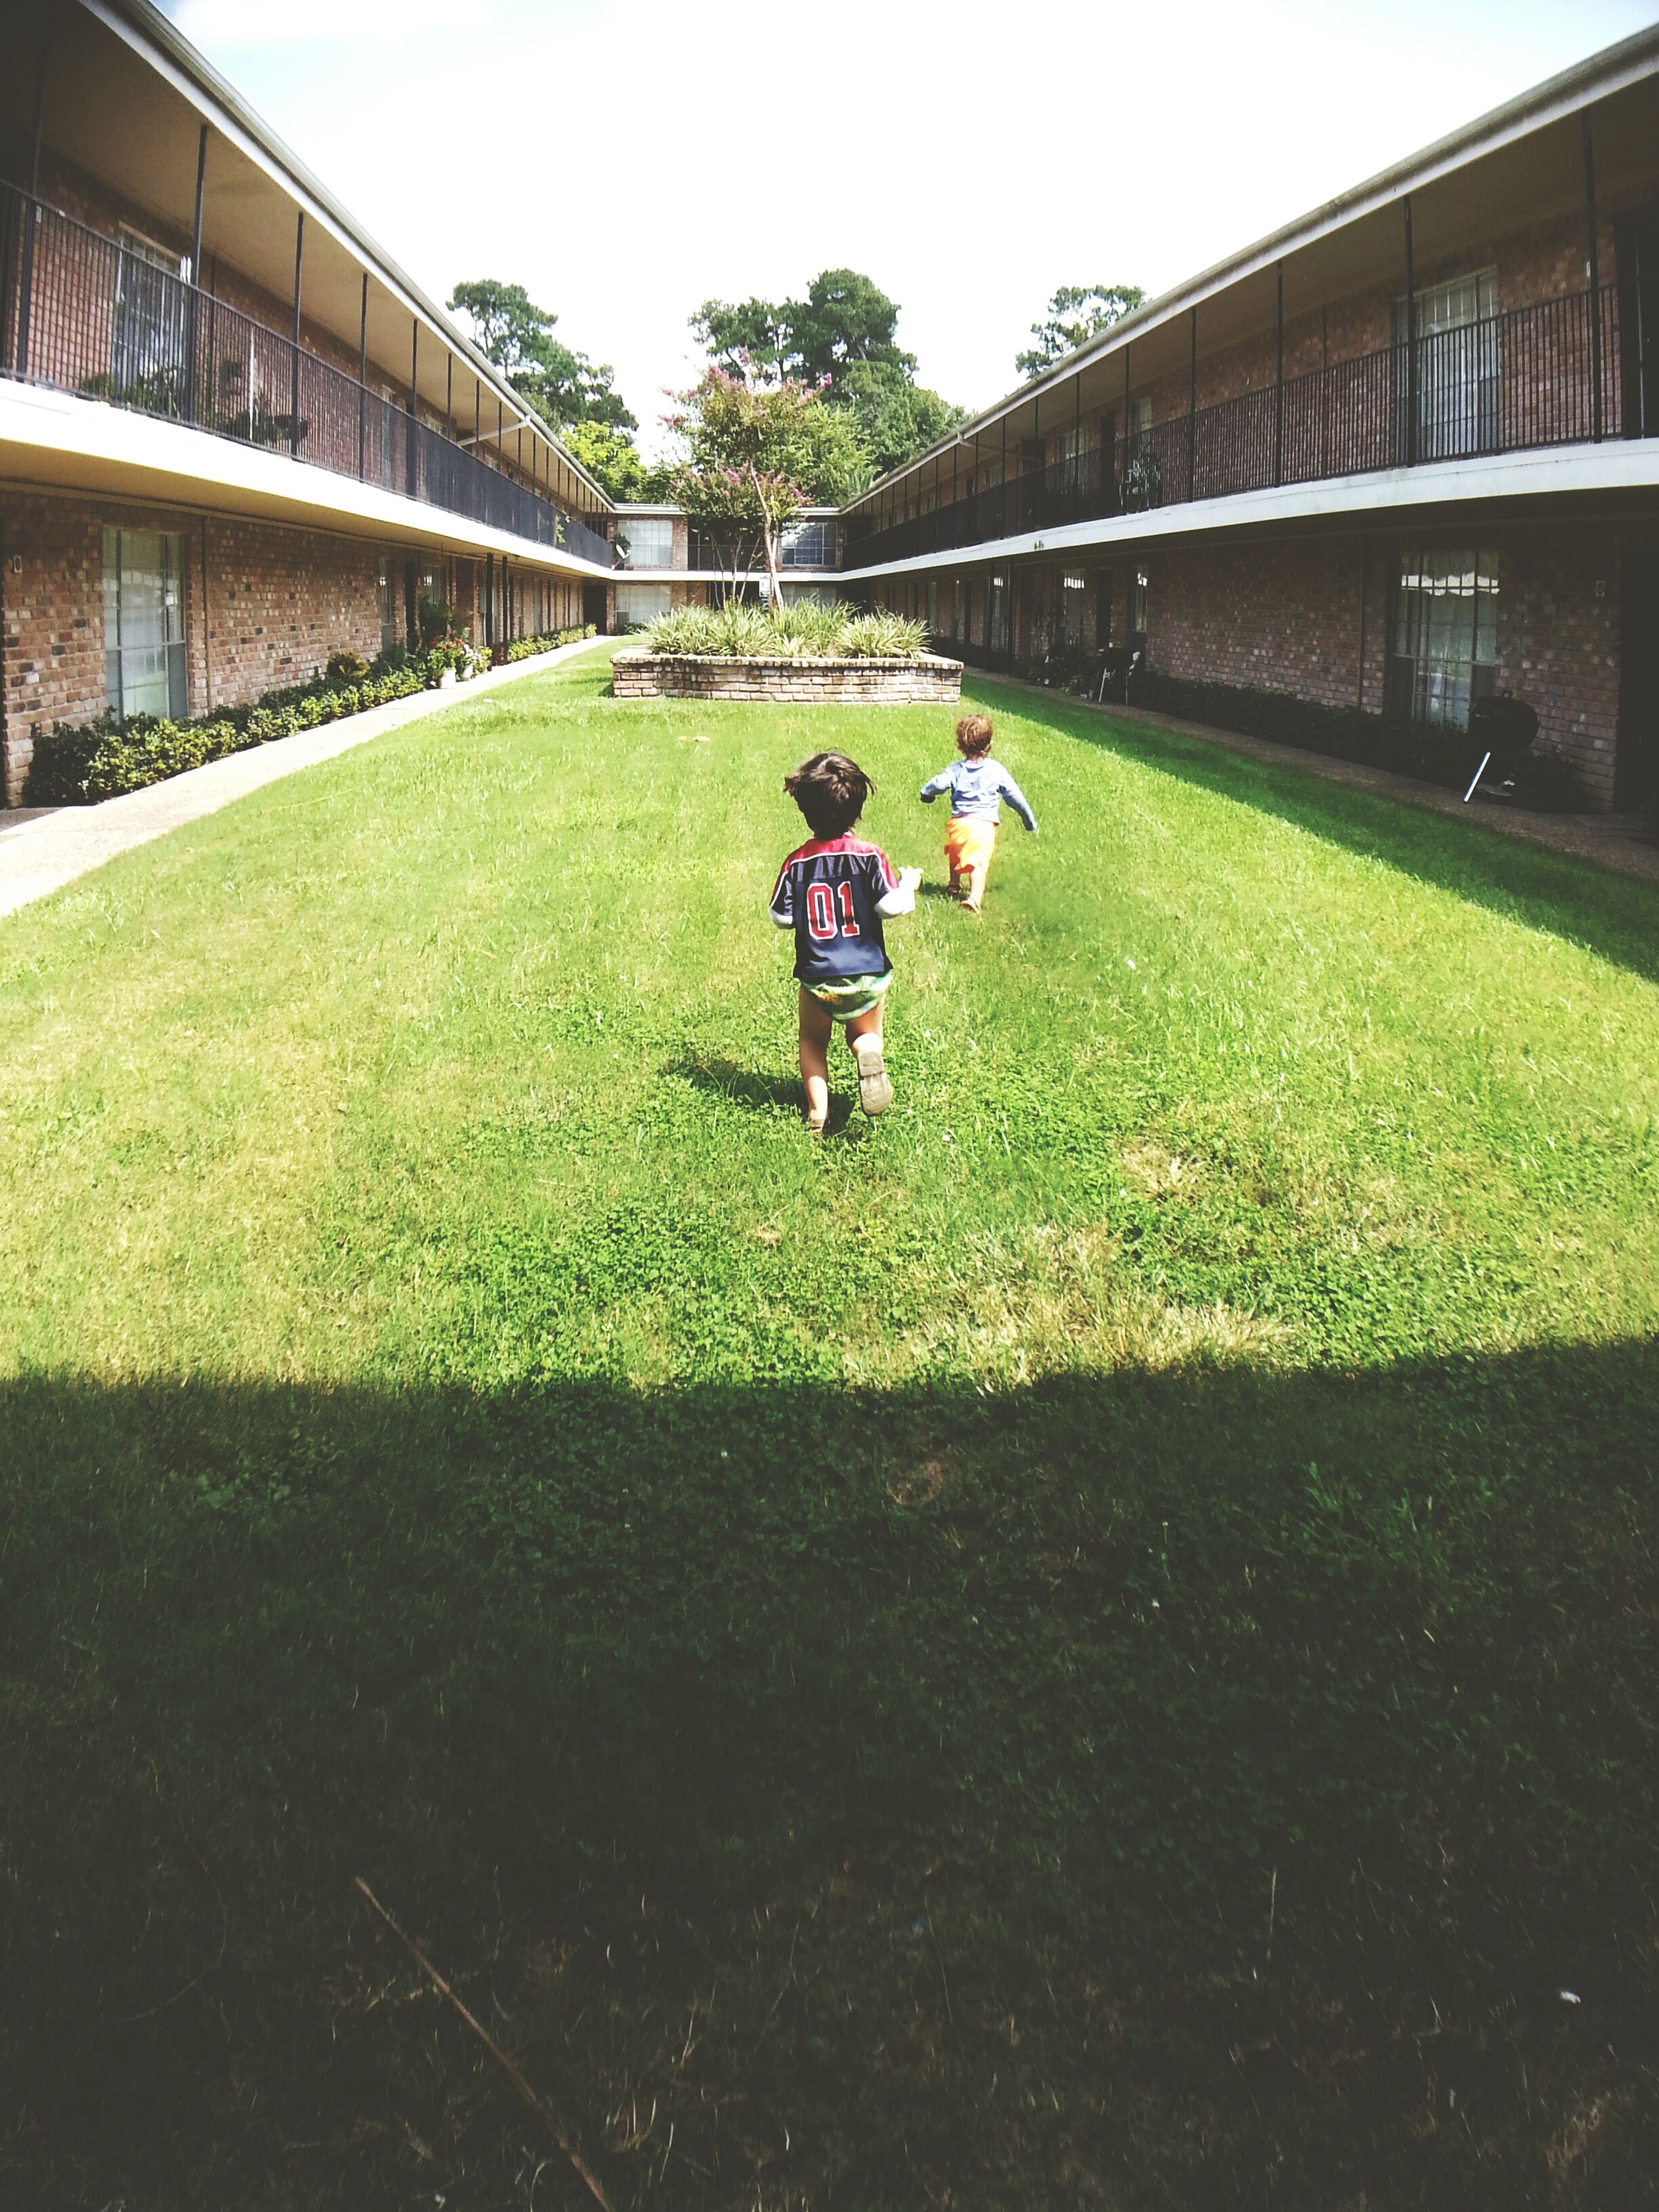 grass, building exterior, architecture, playing, built structure, childhood, green color, boys, full length, city, elementary age, toddler, day, grassy, innocence, outdoors, footpath, yard, baby boys, unknown gender